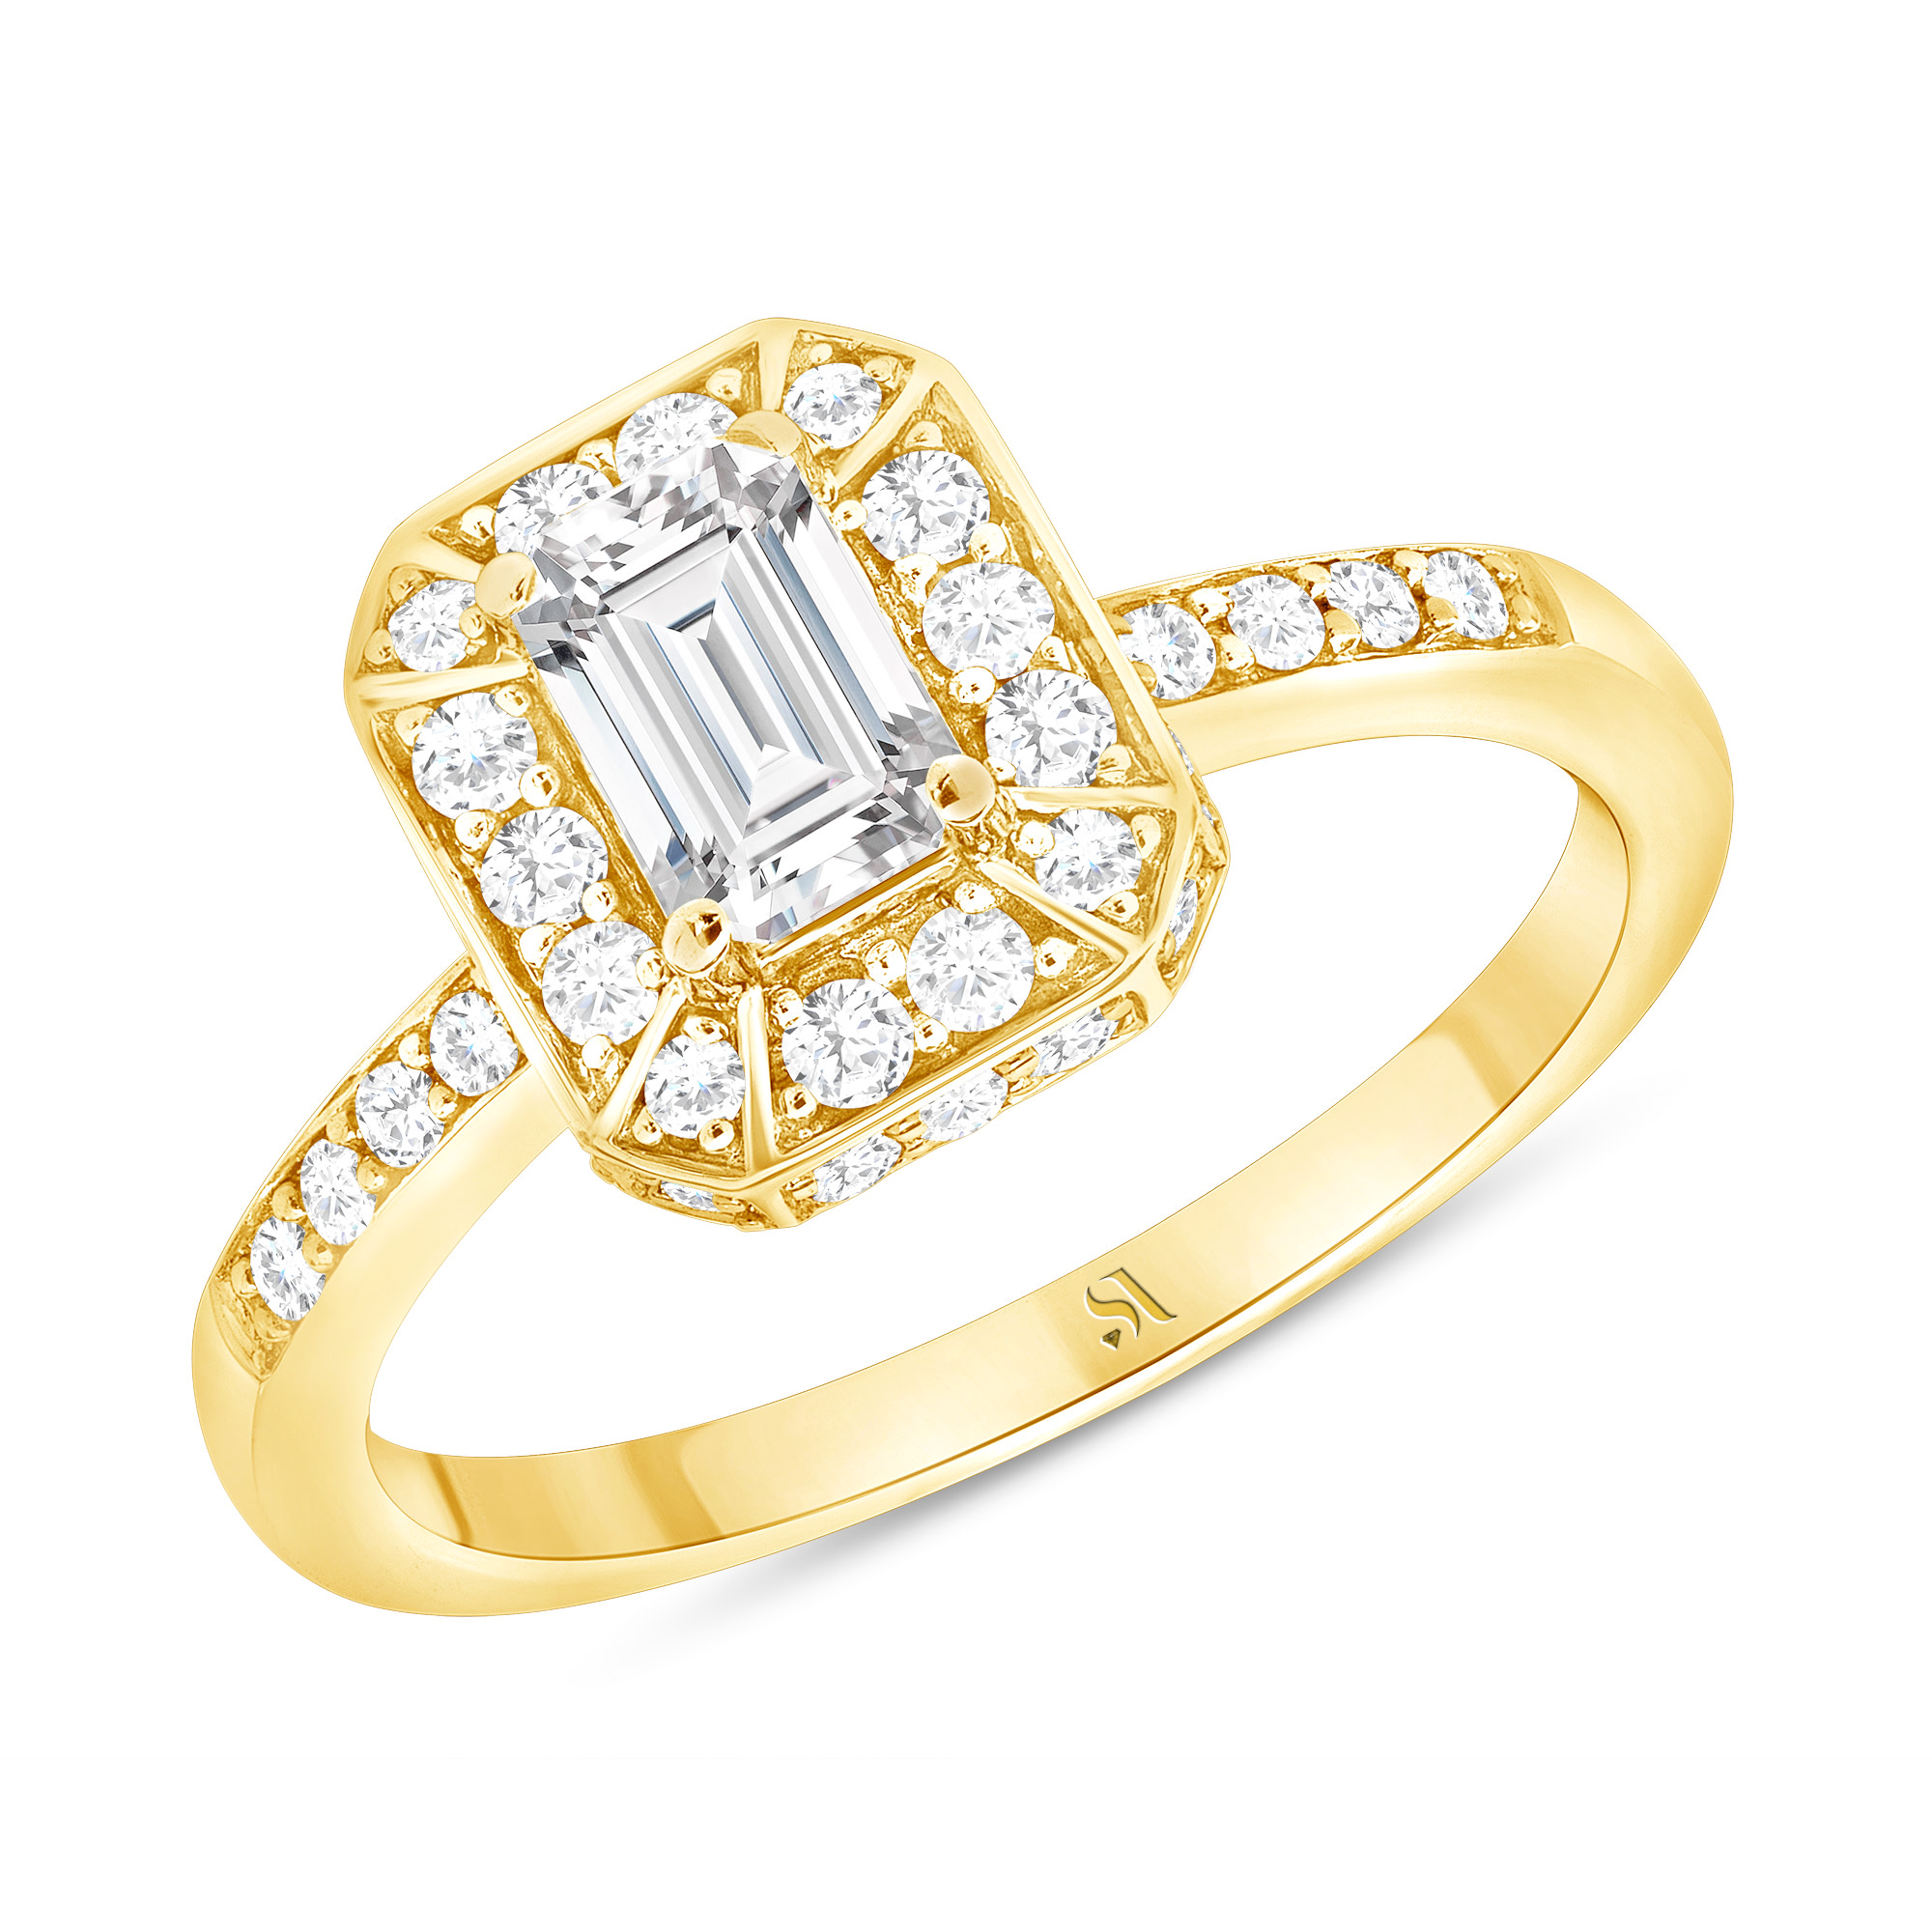 emerald cut diamond engagement ring yellow gold